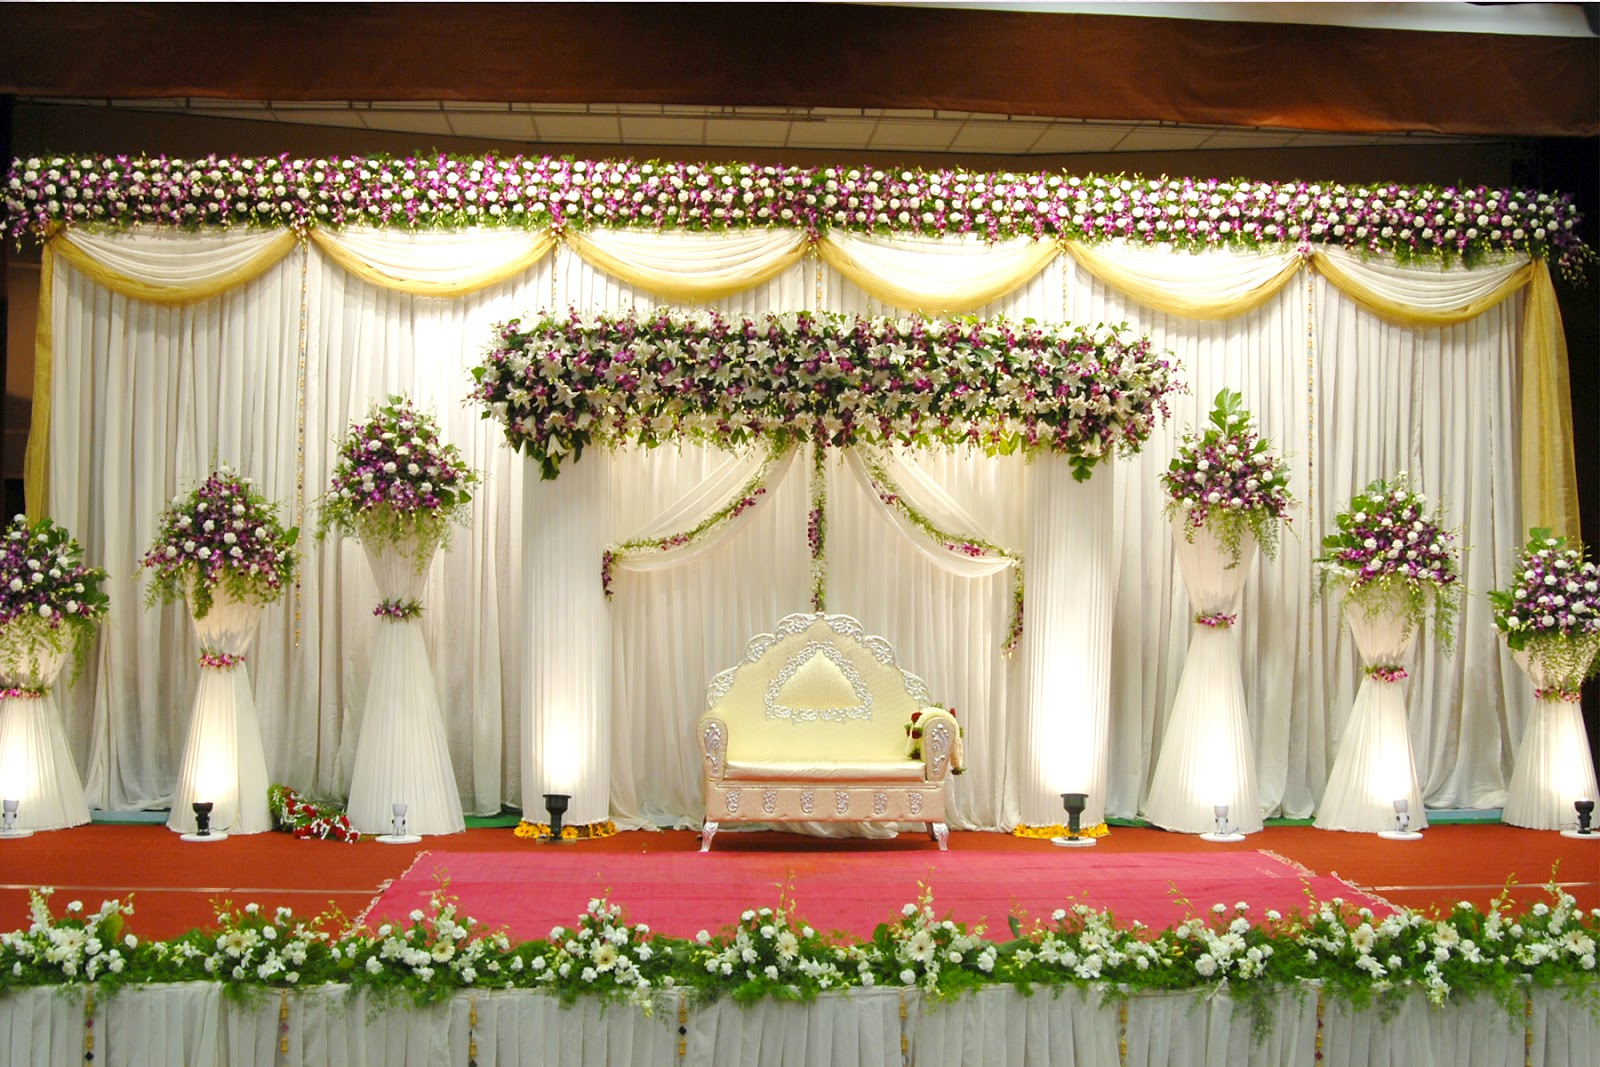 free home decorating ideas photos - Best Wedding Stage Decoration Idea For Indian Weddings